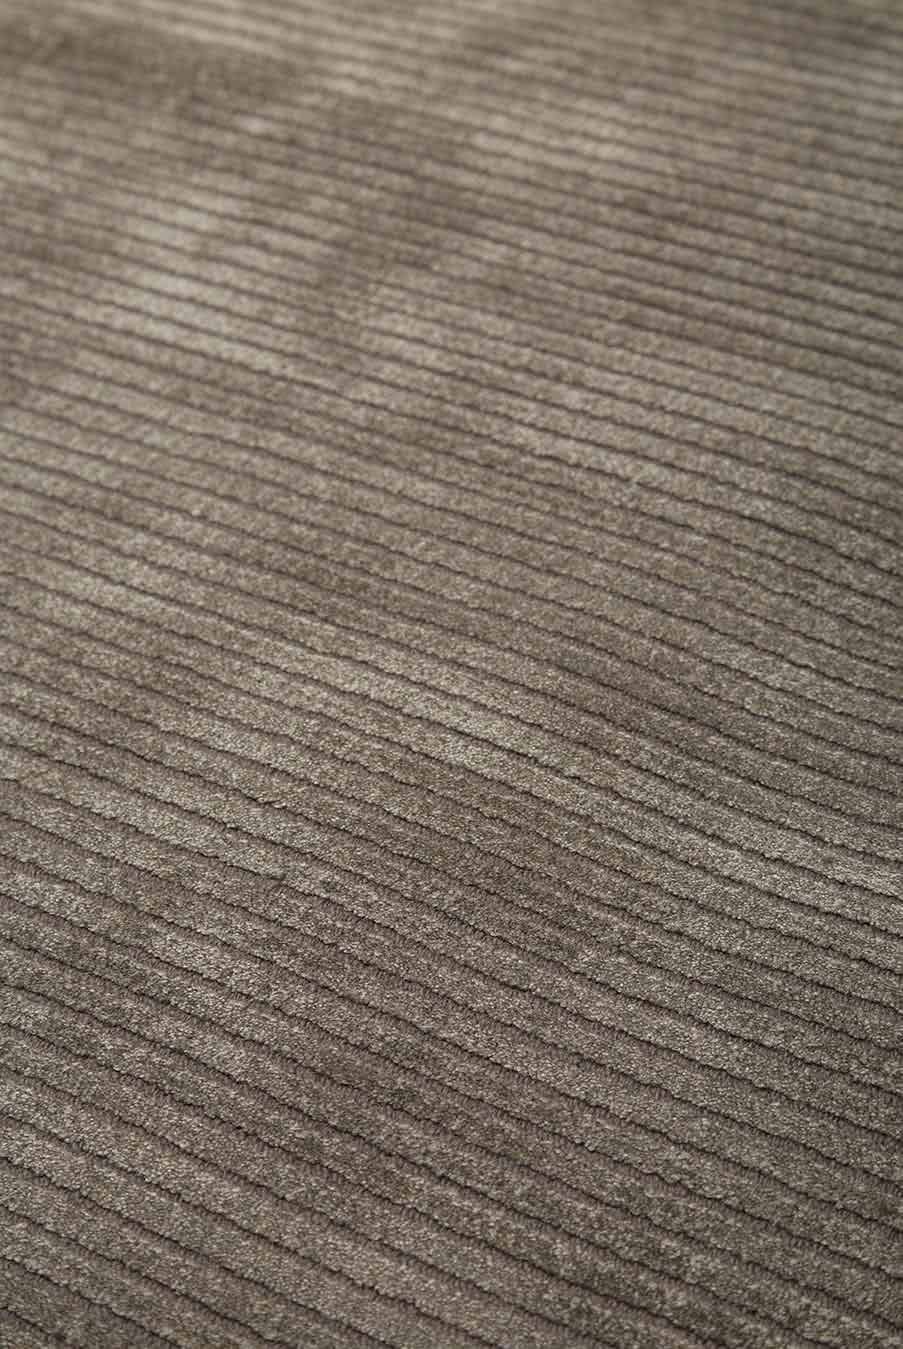 Close up view of textured Velour rug in dark beige colour